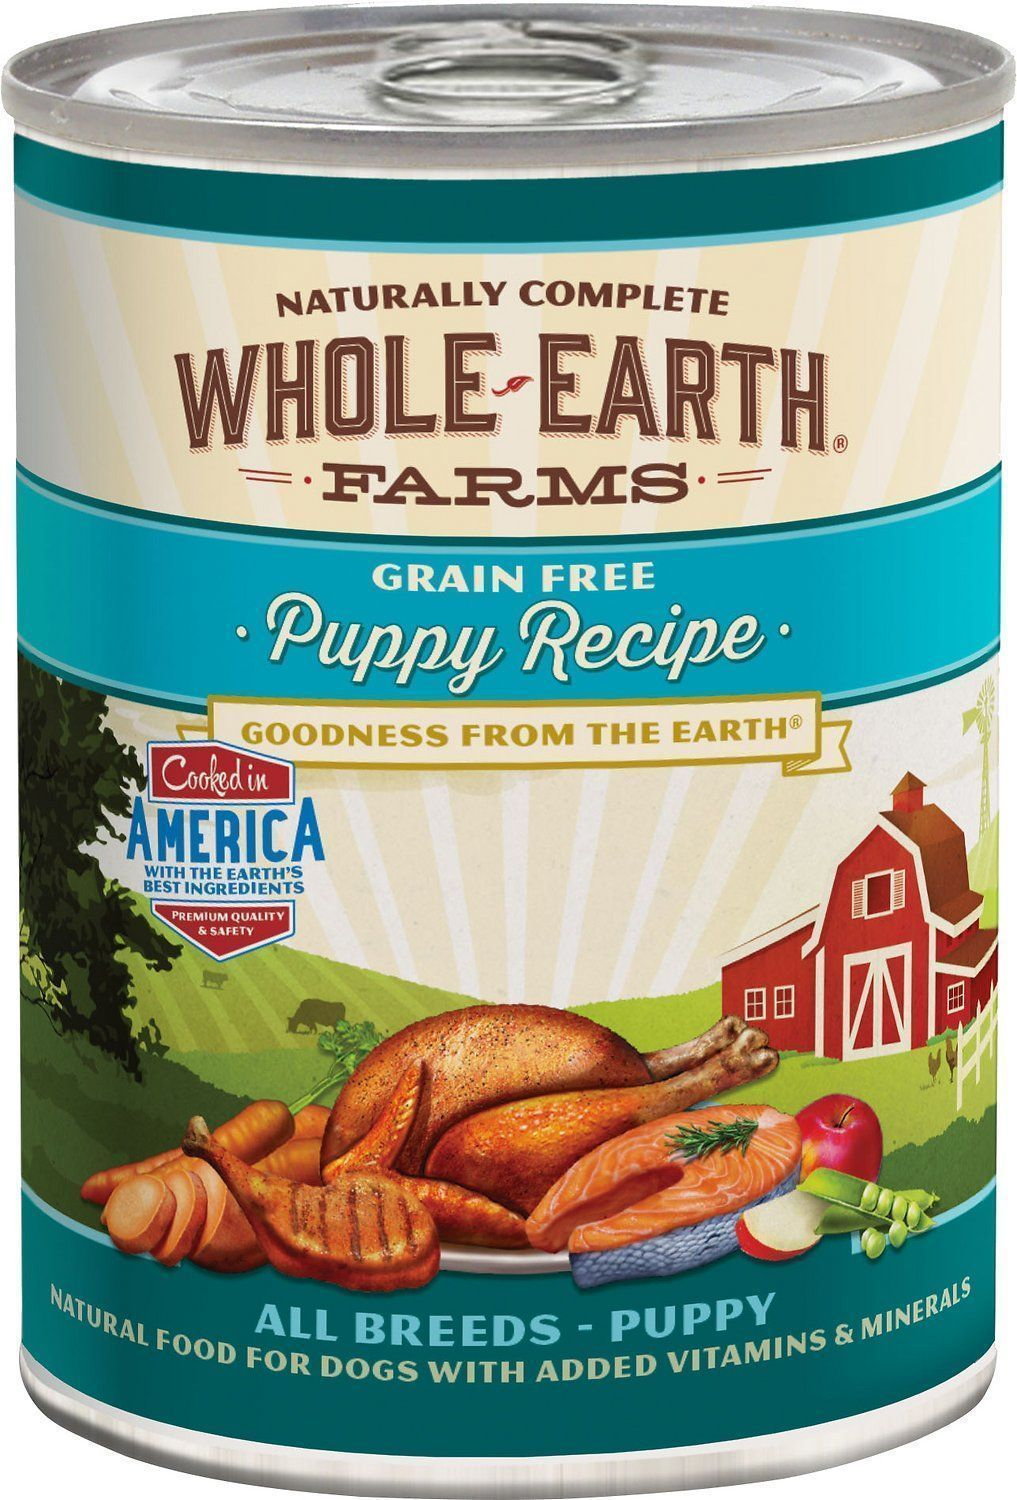 whole earth farms grain-free puppy recipe canned dog food